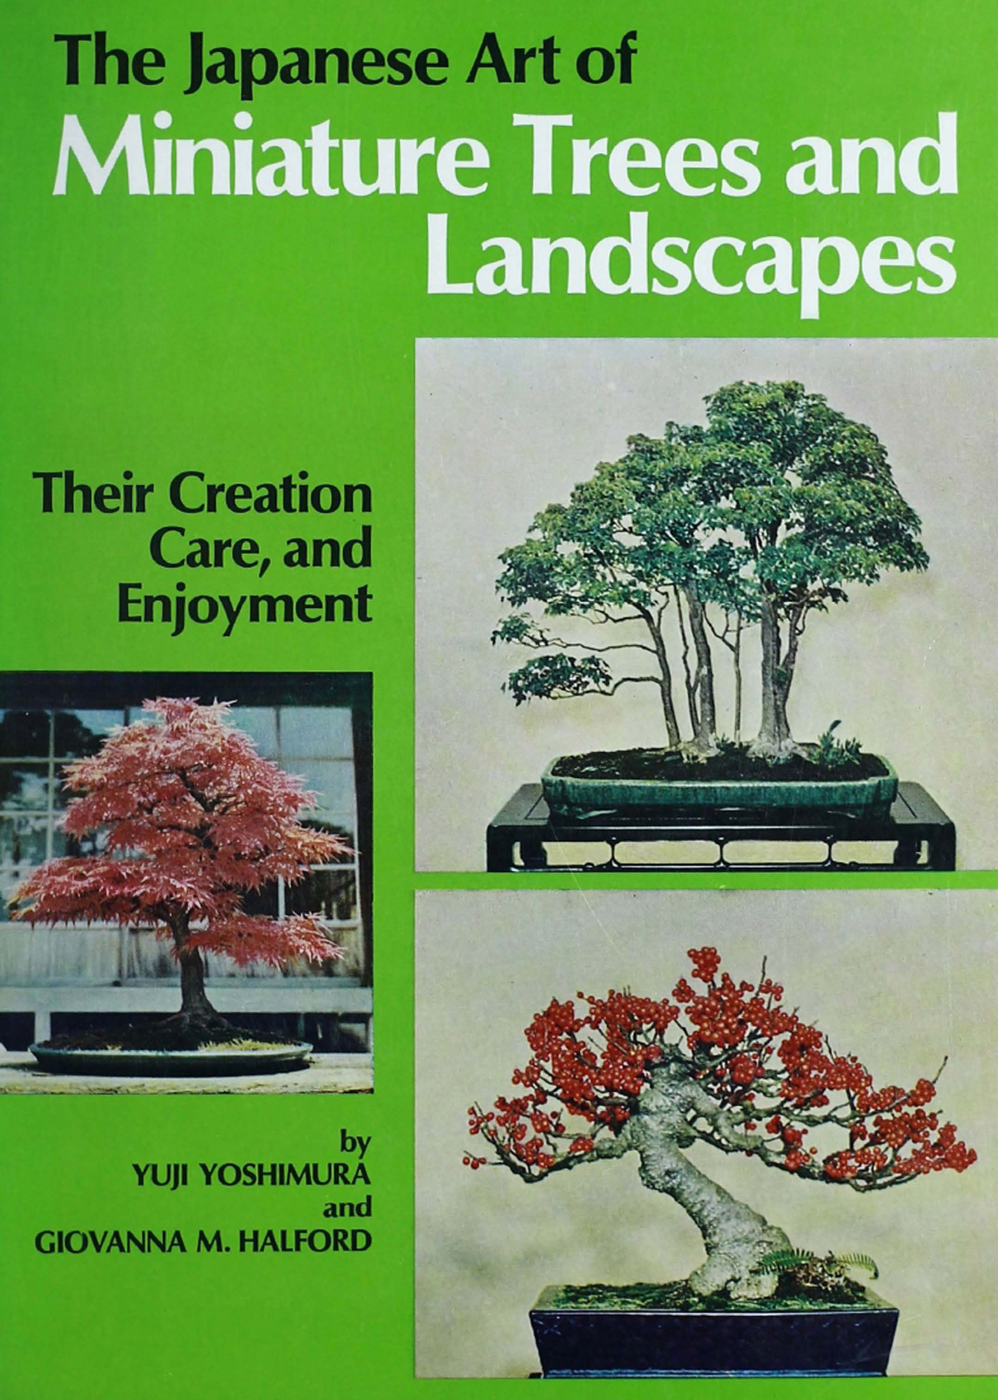 The Japanese Art of Minature Trees and Landscapes